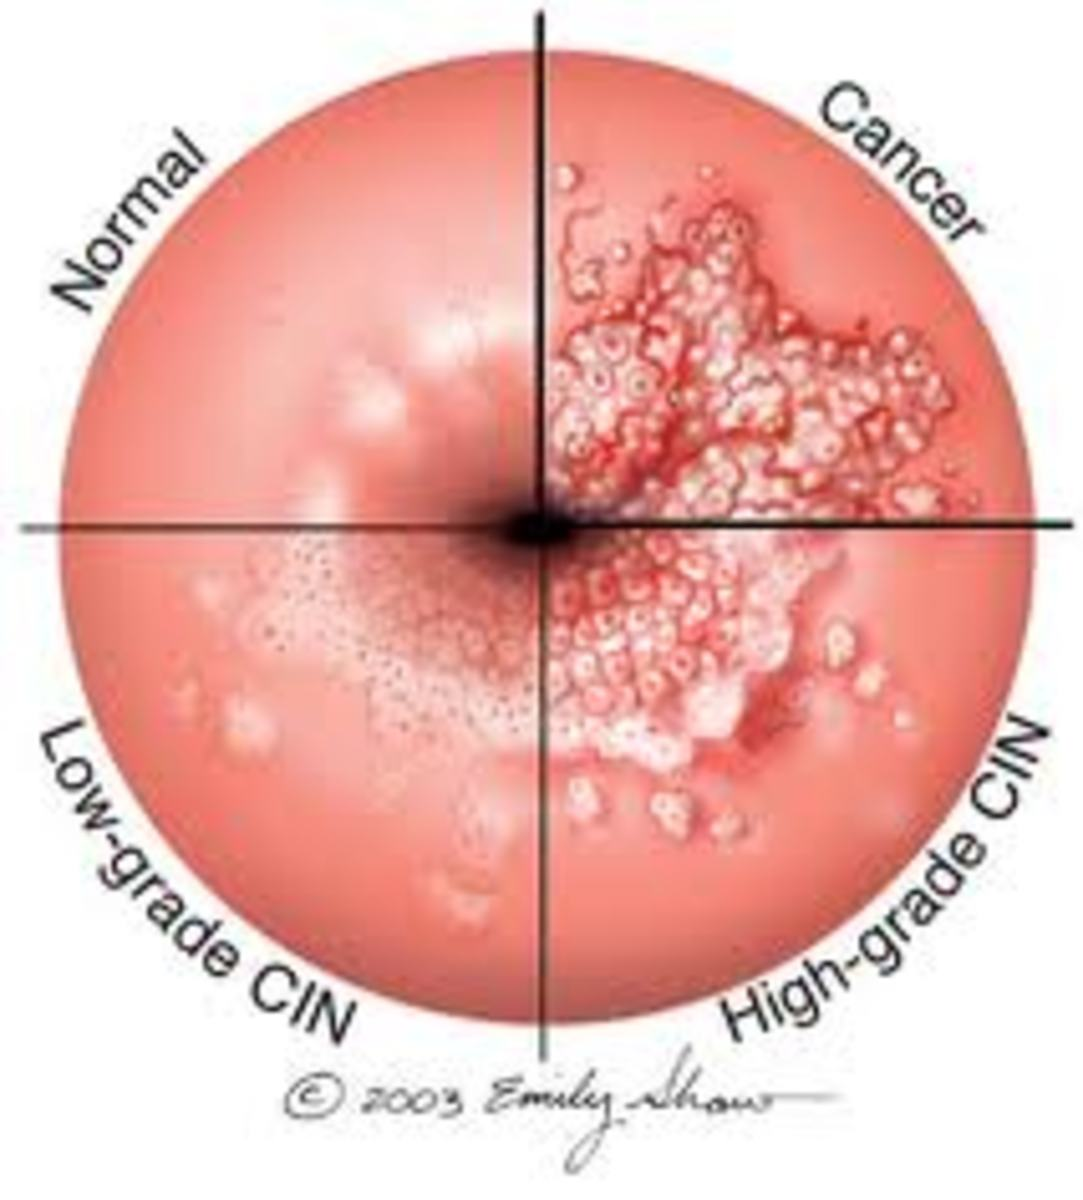 Effects of HPV on the cervix